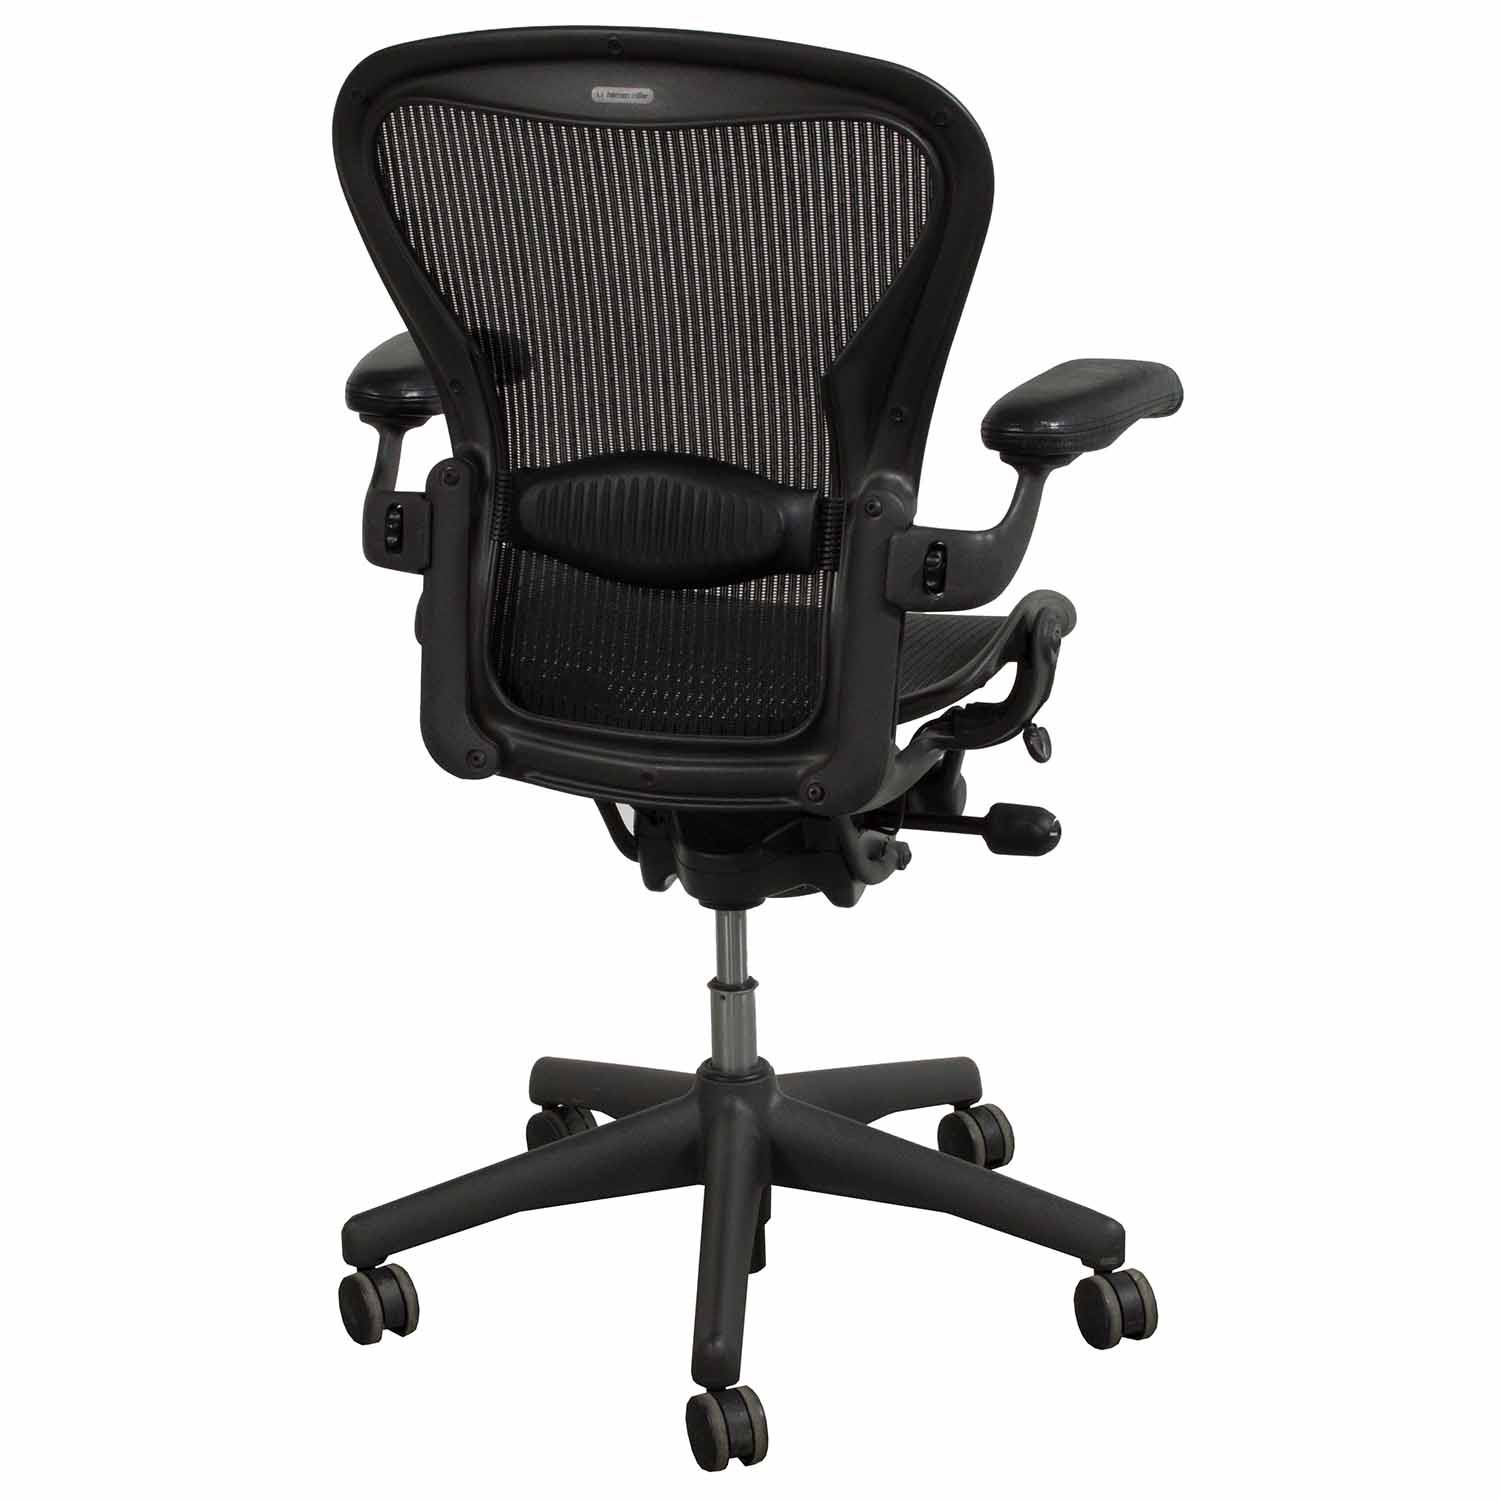 aeron chair sizes outdoor swing bunnings herman miller used size b leather arm task